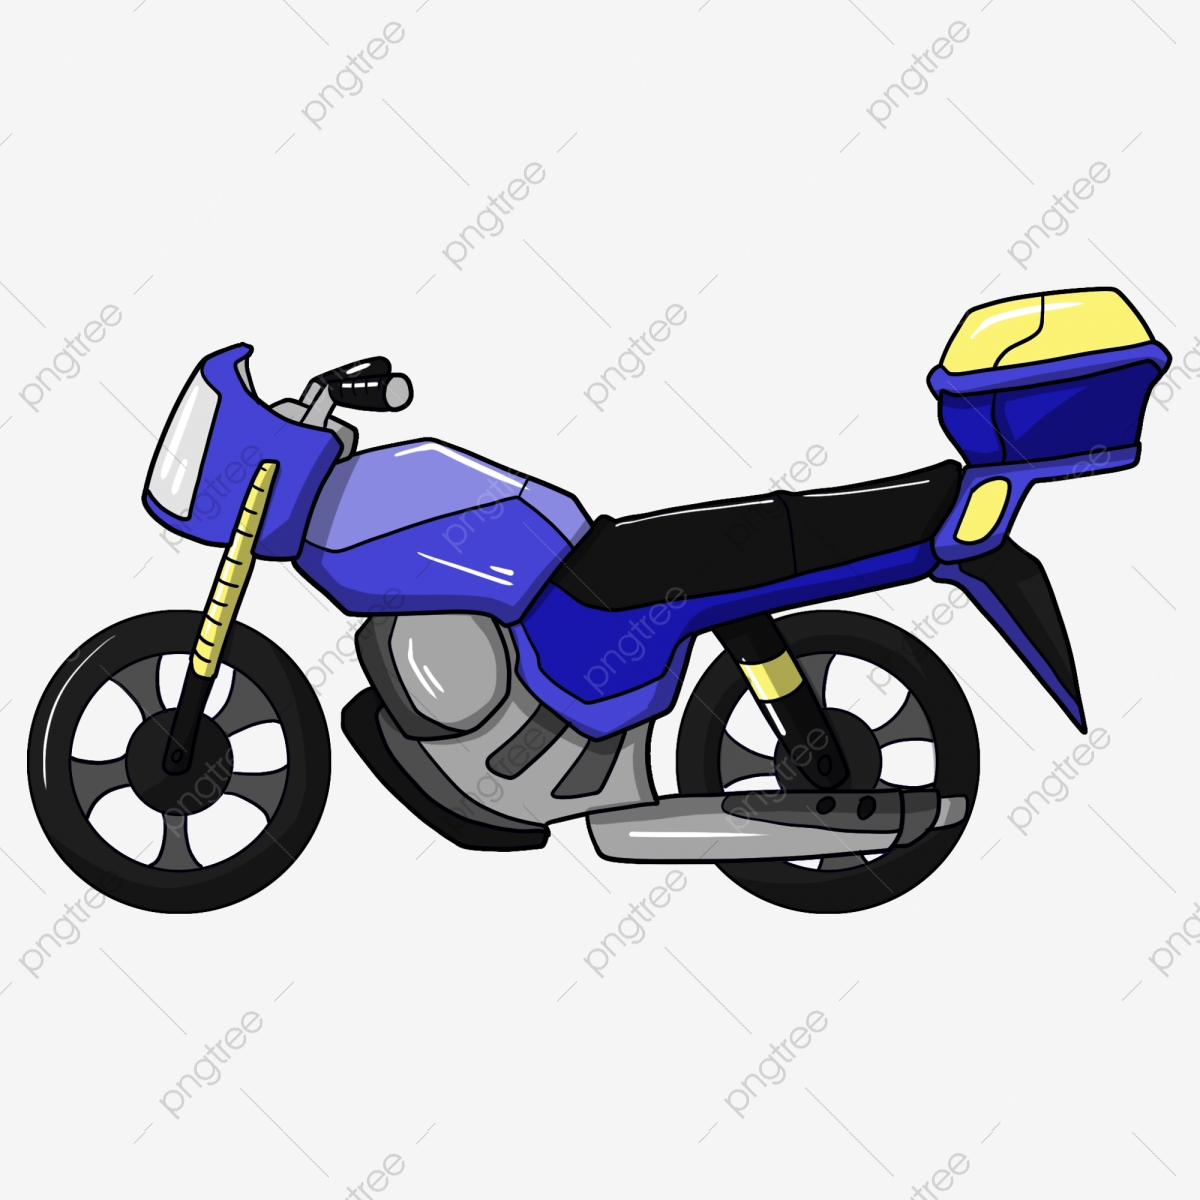 Blue Blue Motorcycle Motorcycle Hand Drawn Motorcycle, Motorcycle.